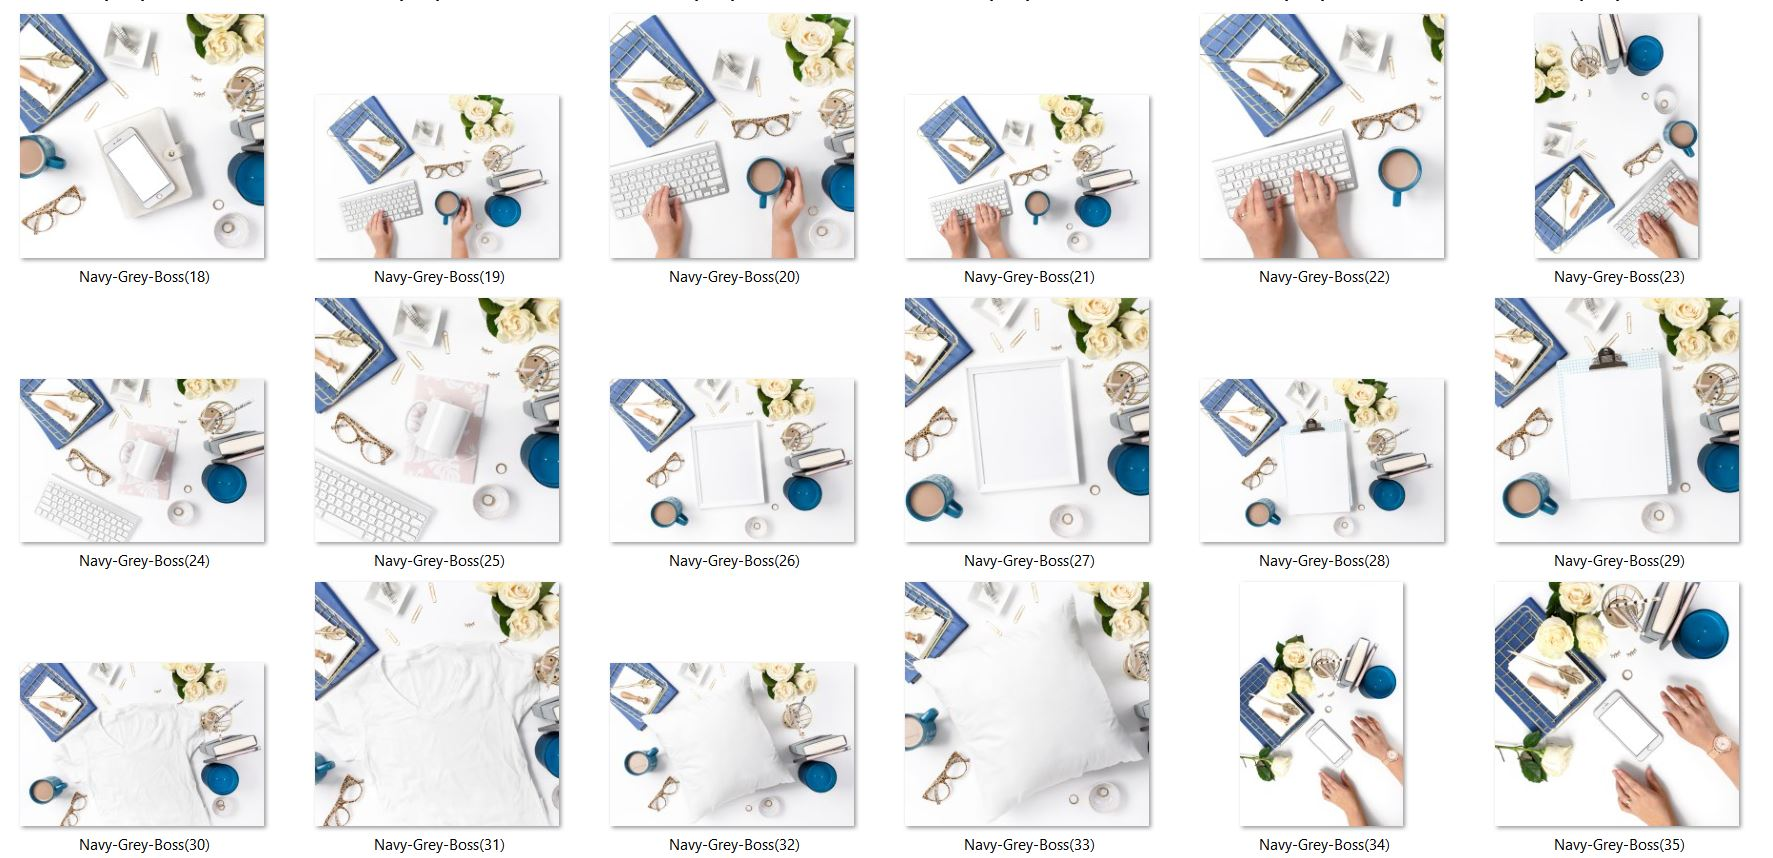 Navy White Gray Grey Business Styled Stock Photos Flat Lays